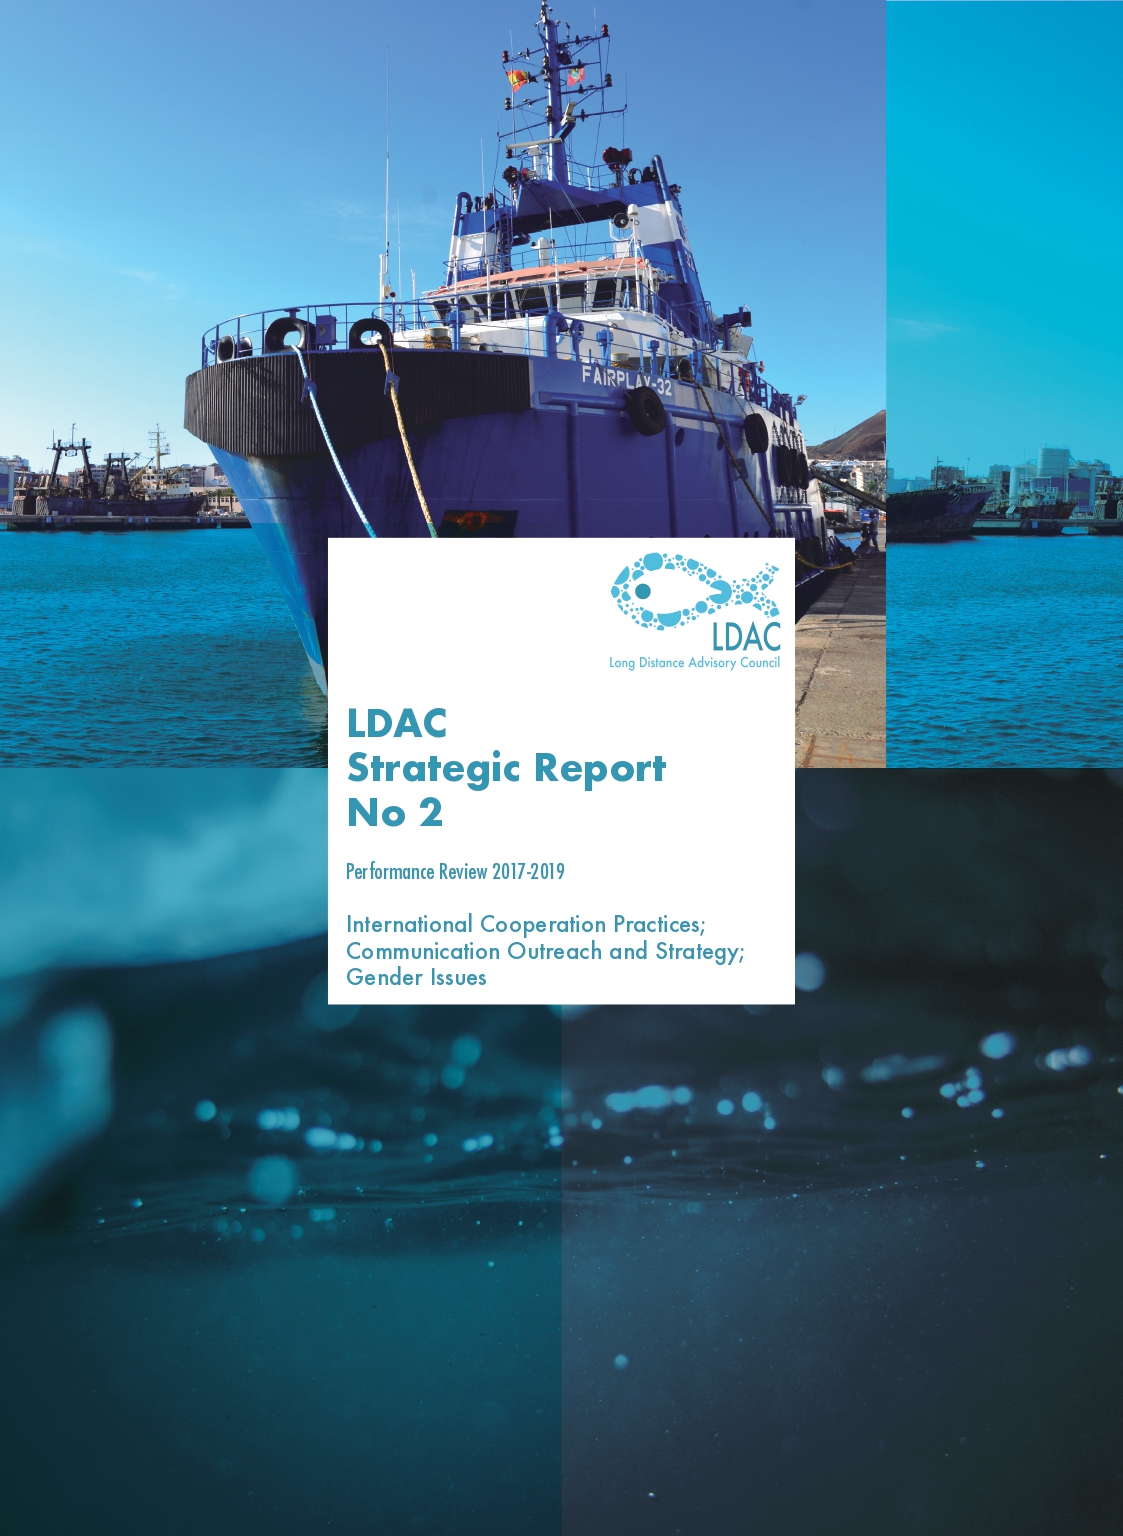 LDAC Performance Review 2020 (Phase II)